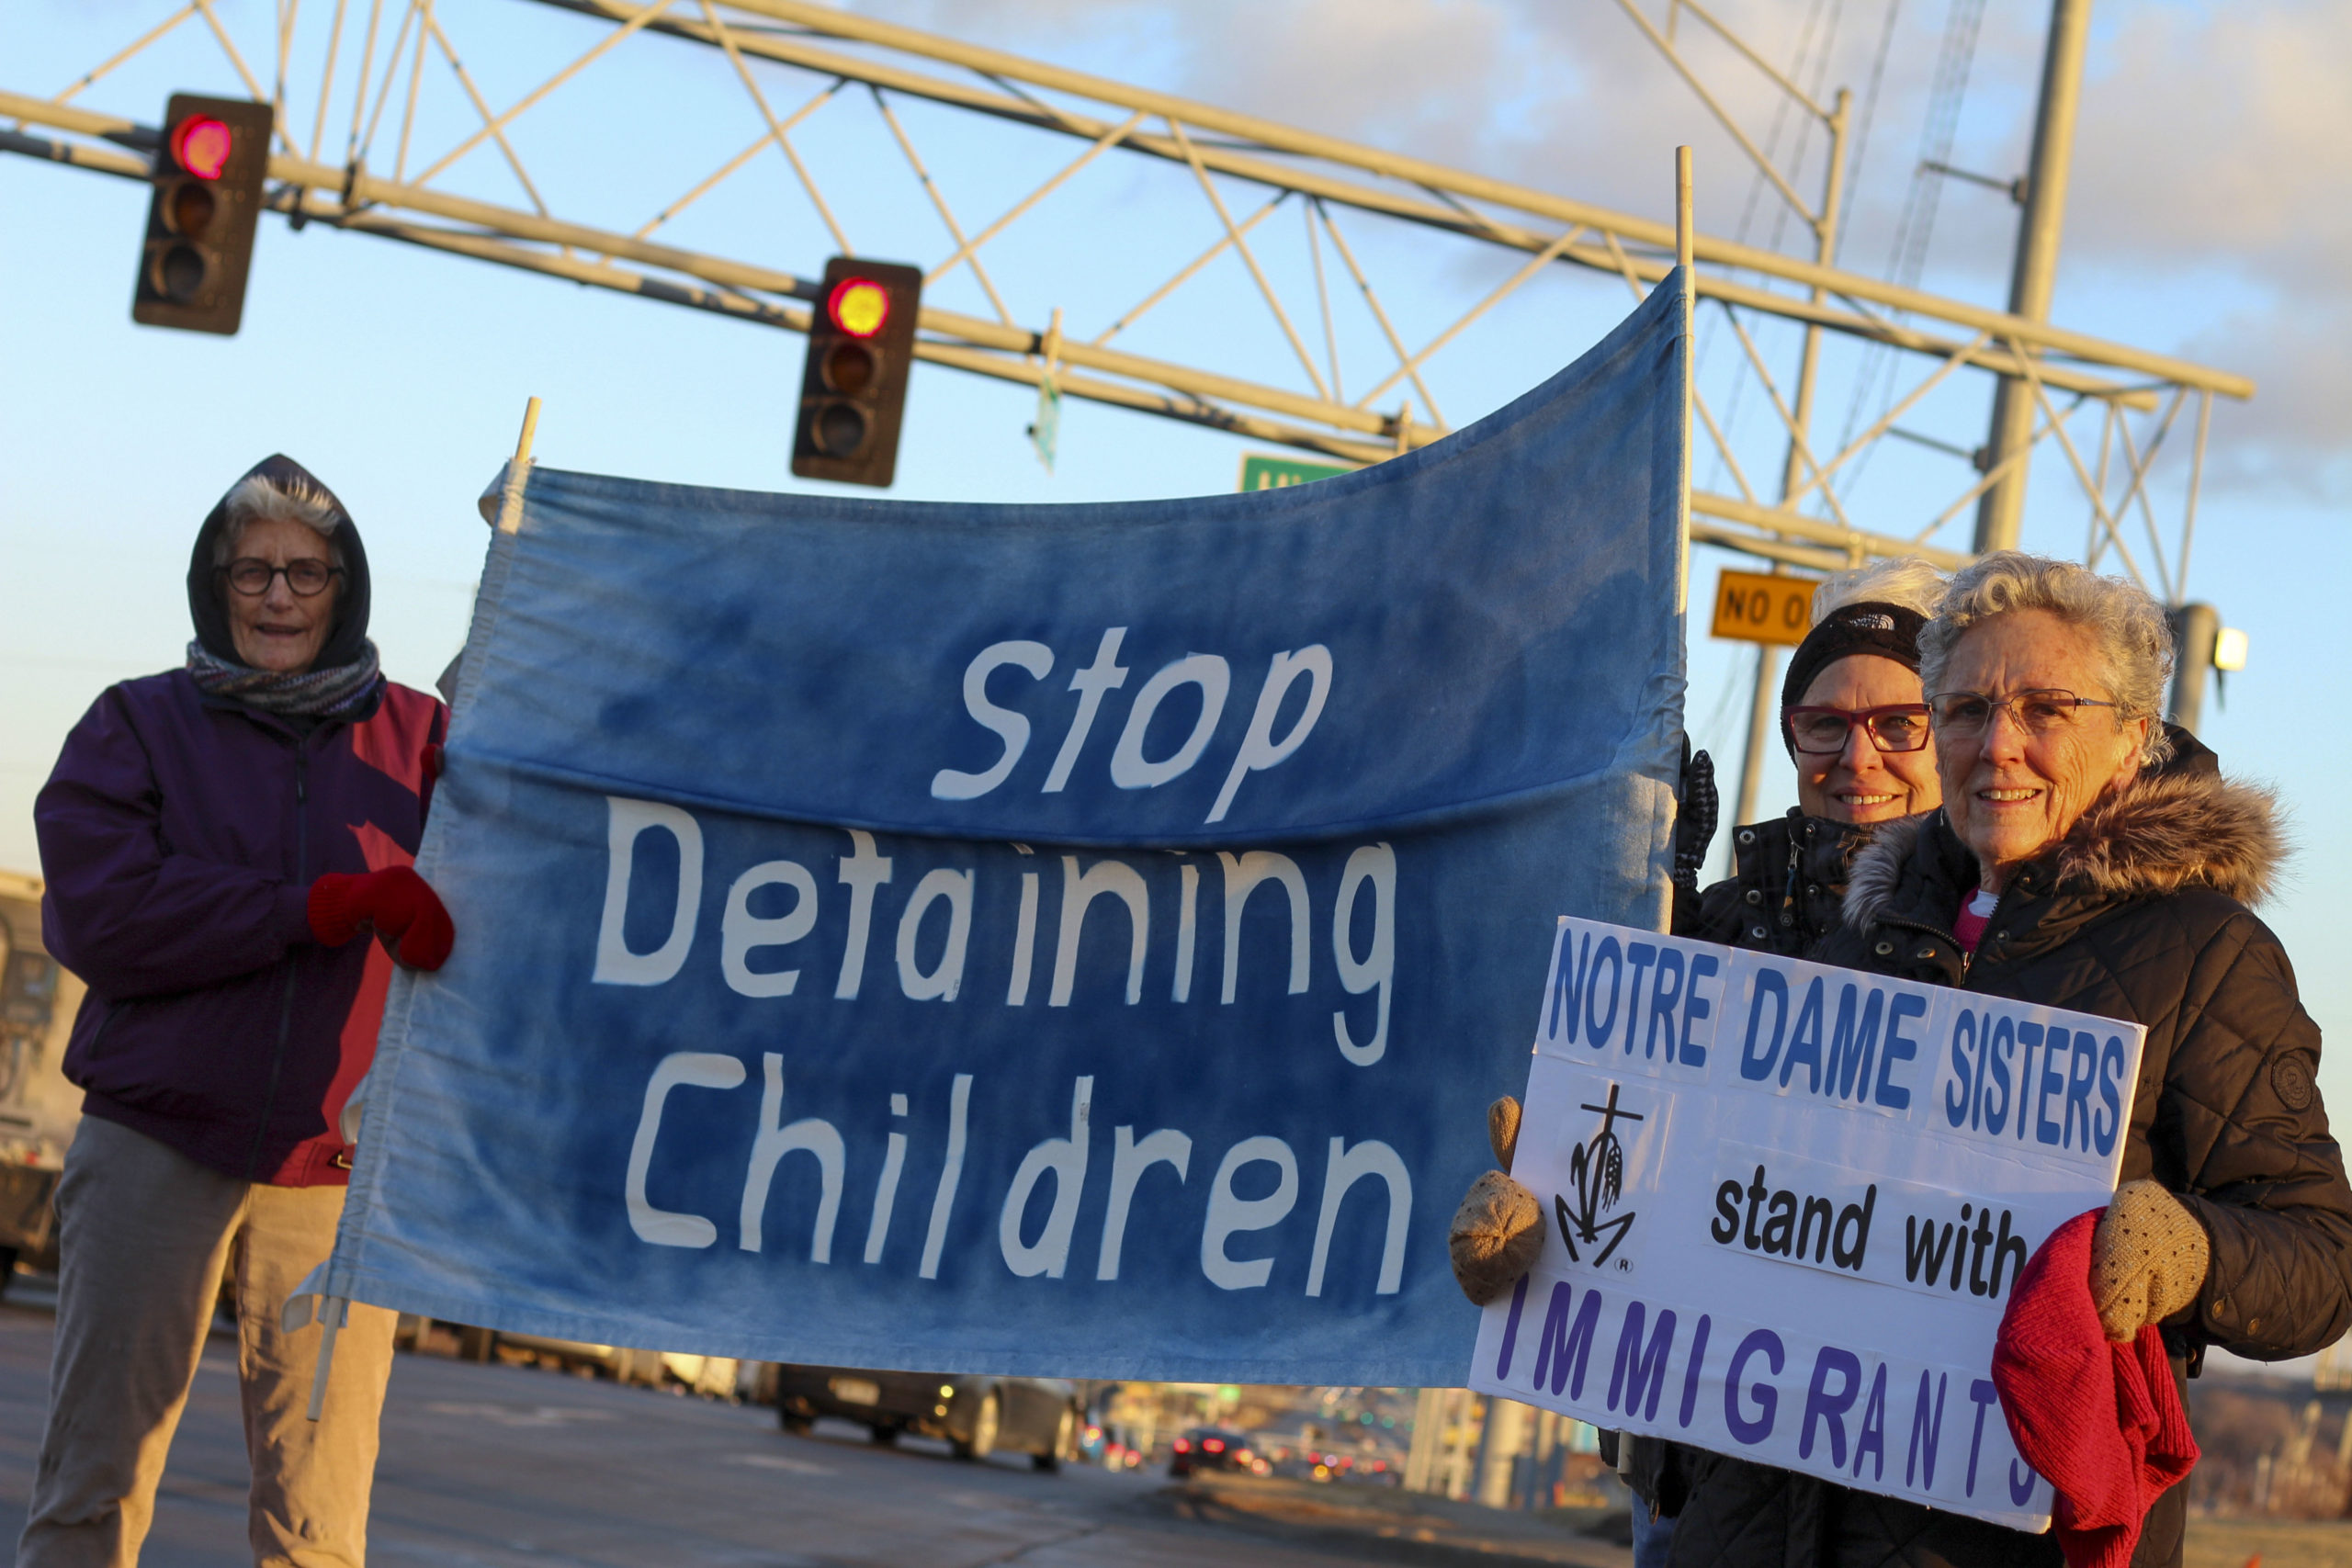 nds holding signs to stop detaining children